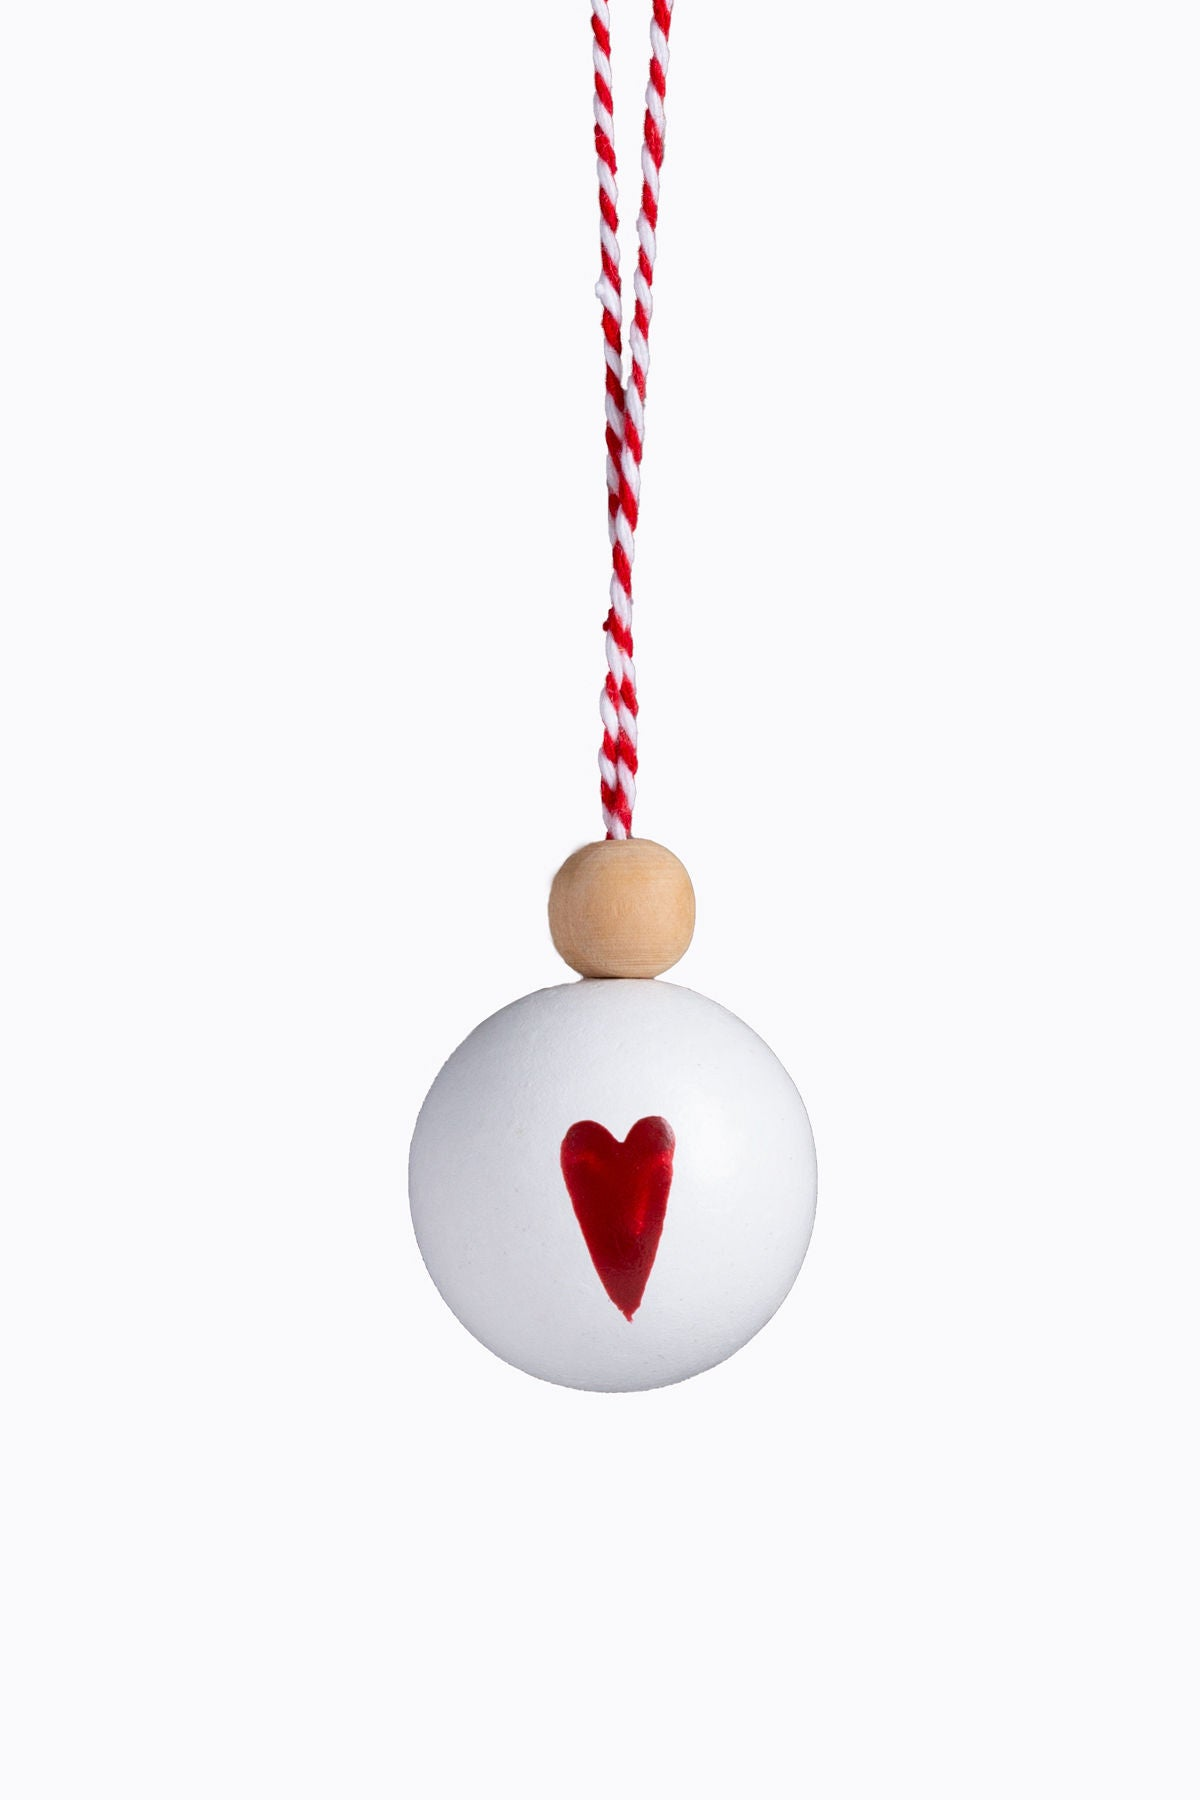 XMAS: Painted Wood Ball Ornament